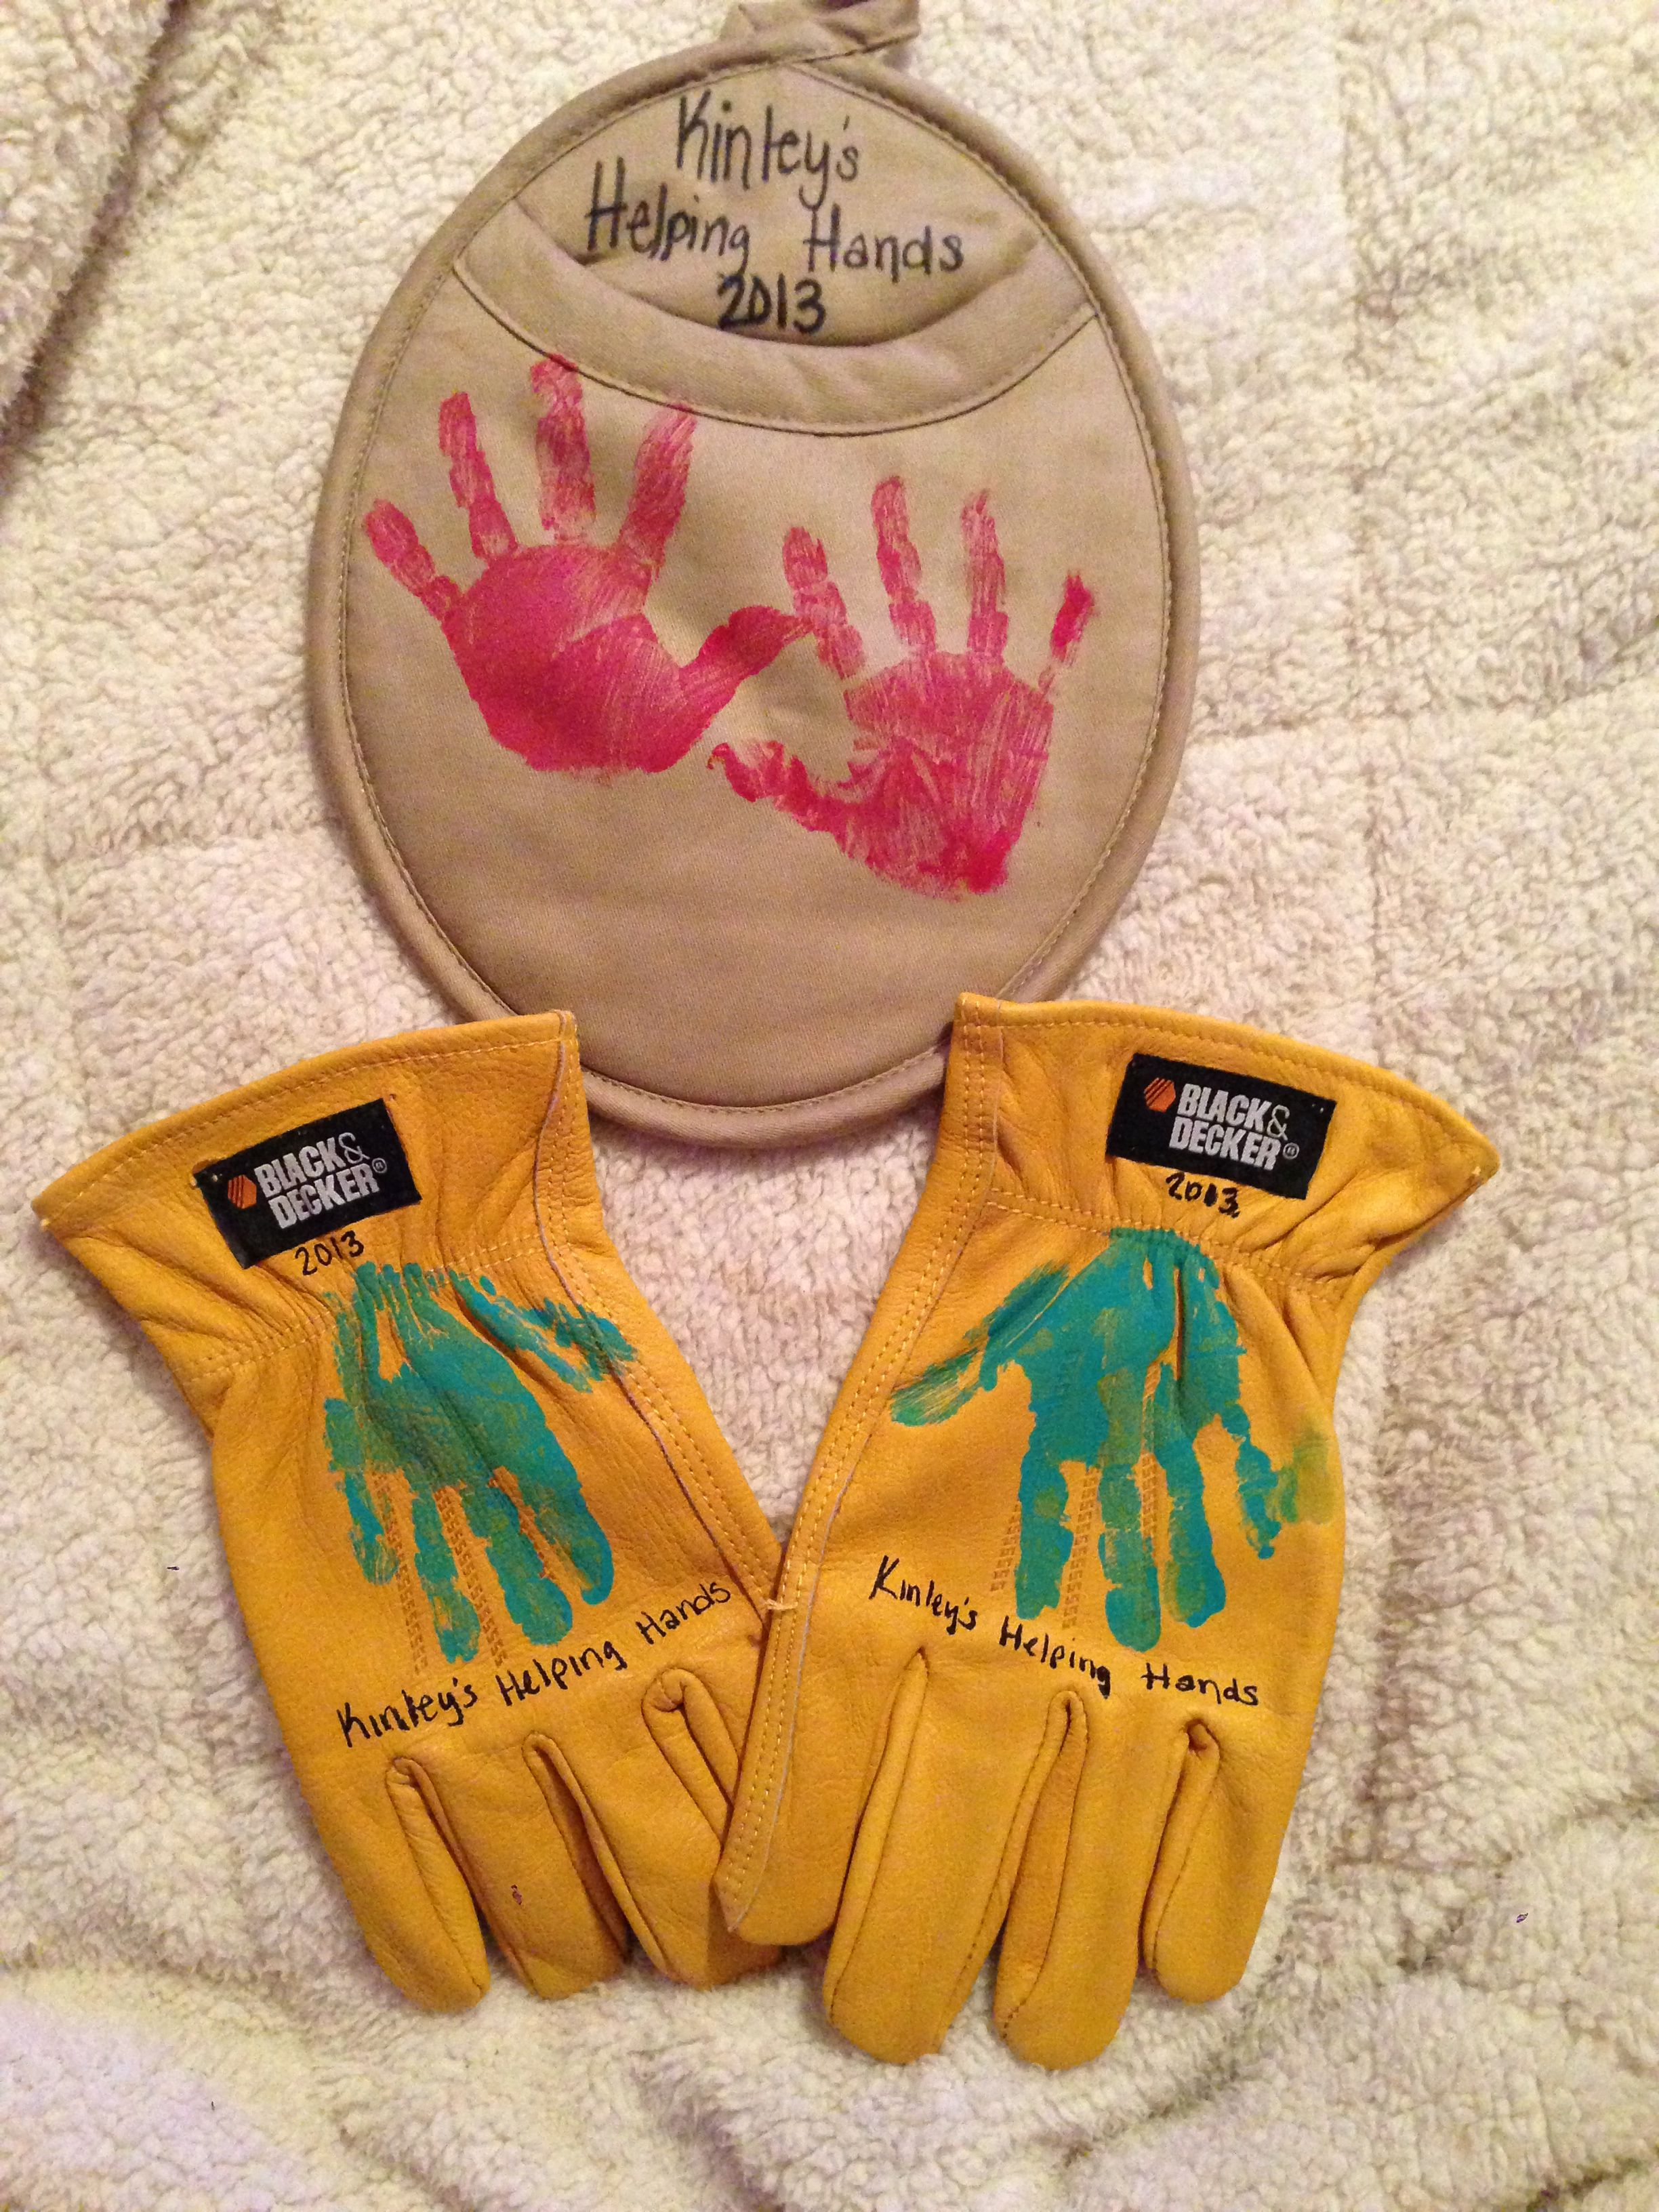 Handprints! Birthday presents for grandparents | Father's ...